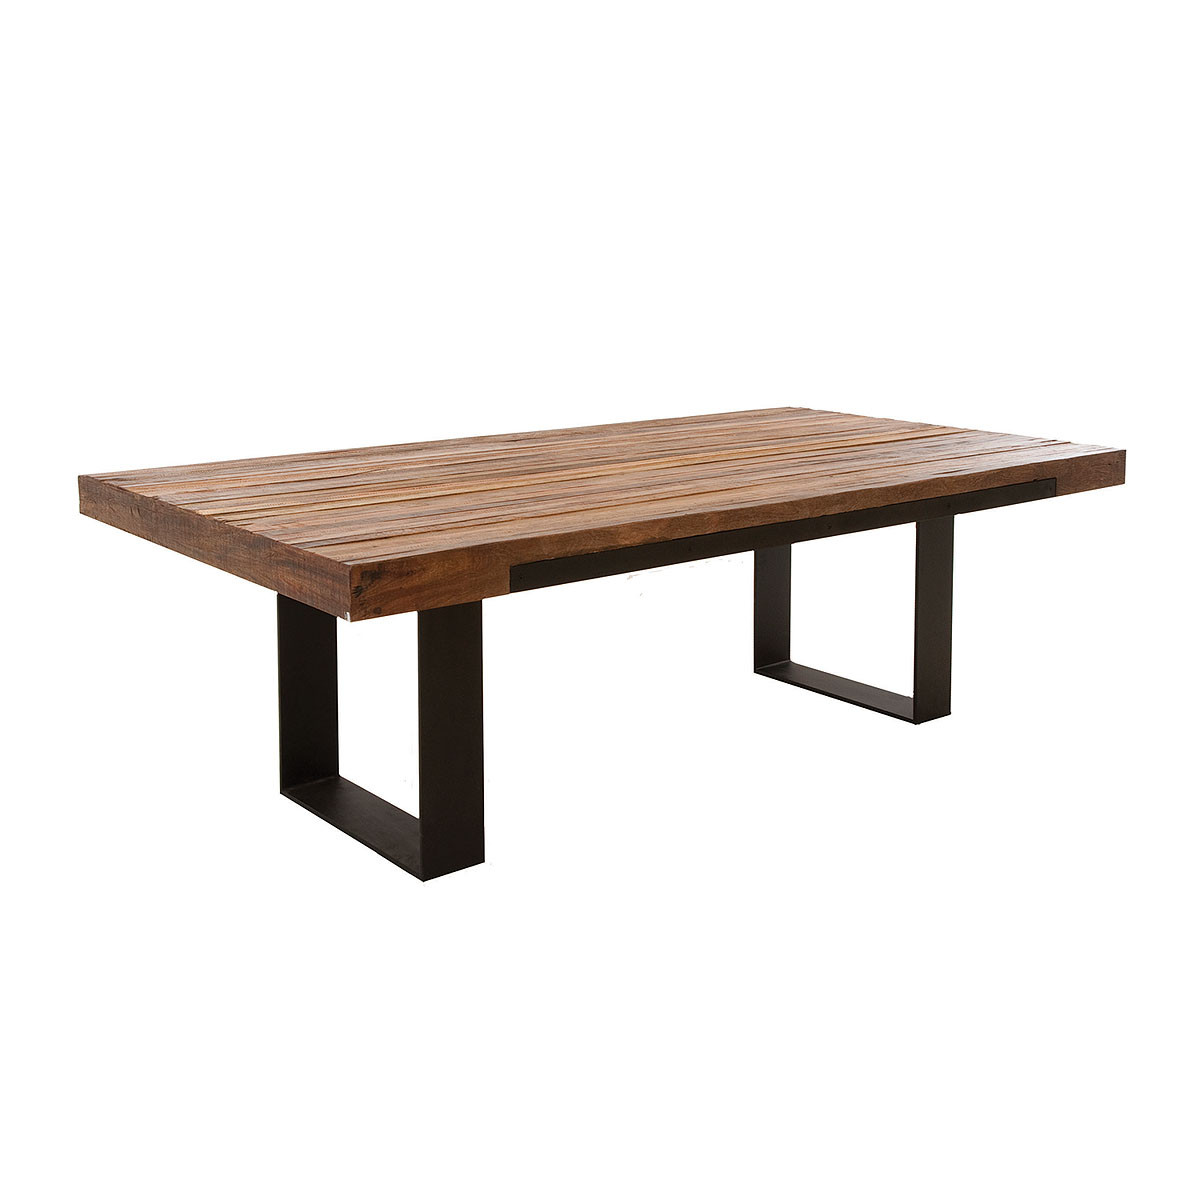 Dining table make dining table recycled wood Best wood for dining table